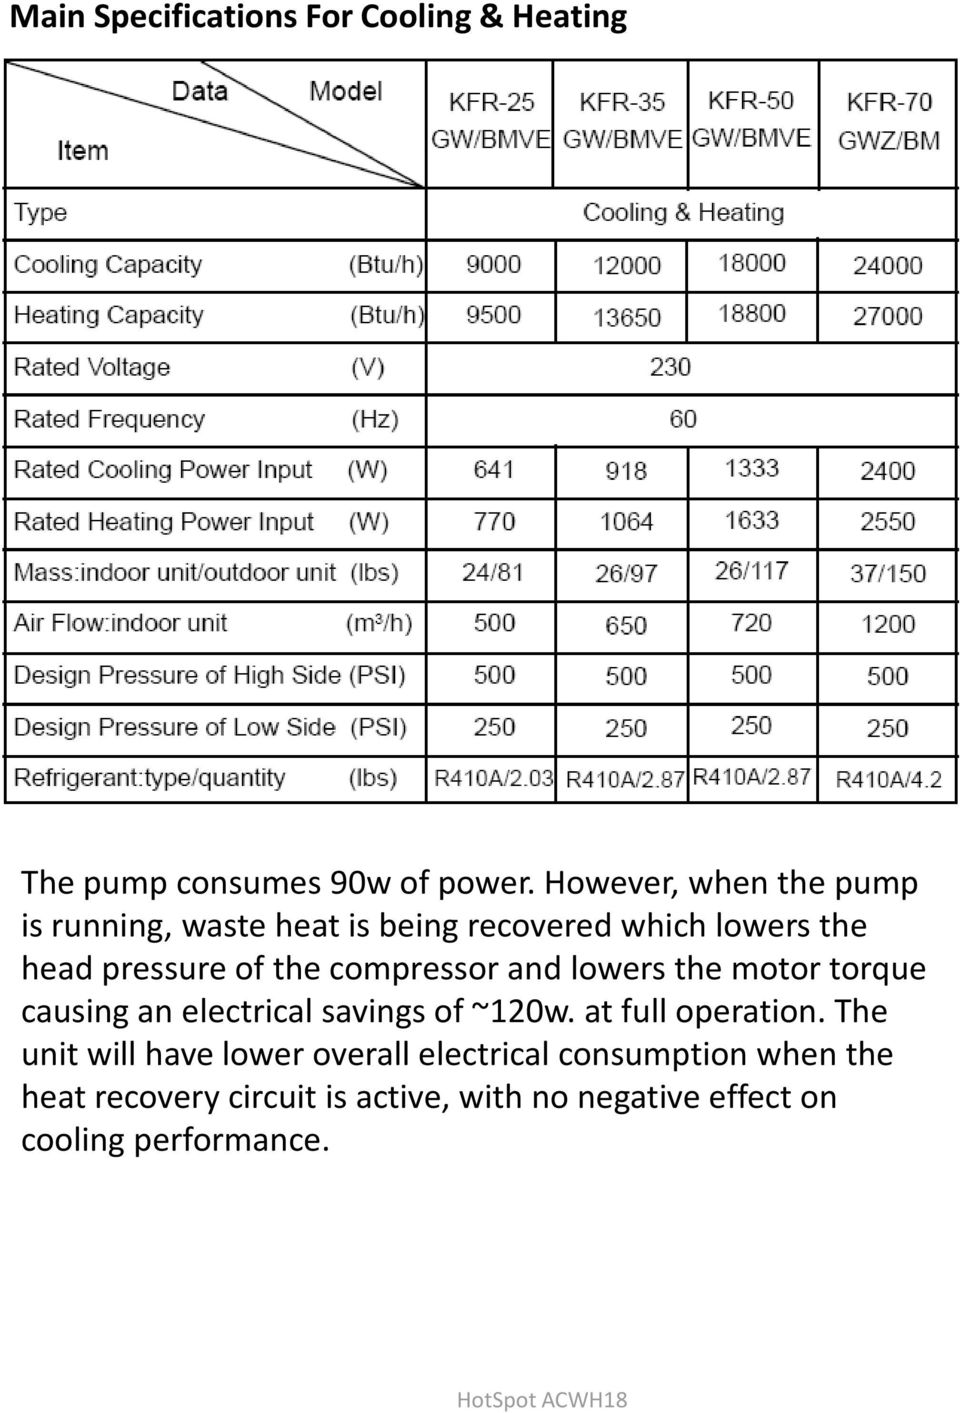 compressor and lowers the motor torque causing an electrical savings of ~120w. at full operation.